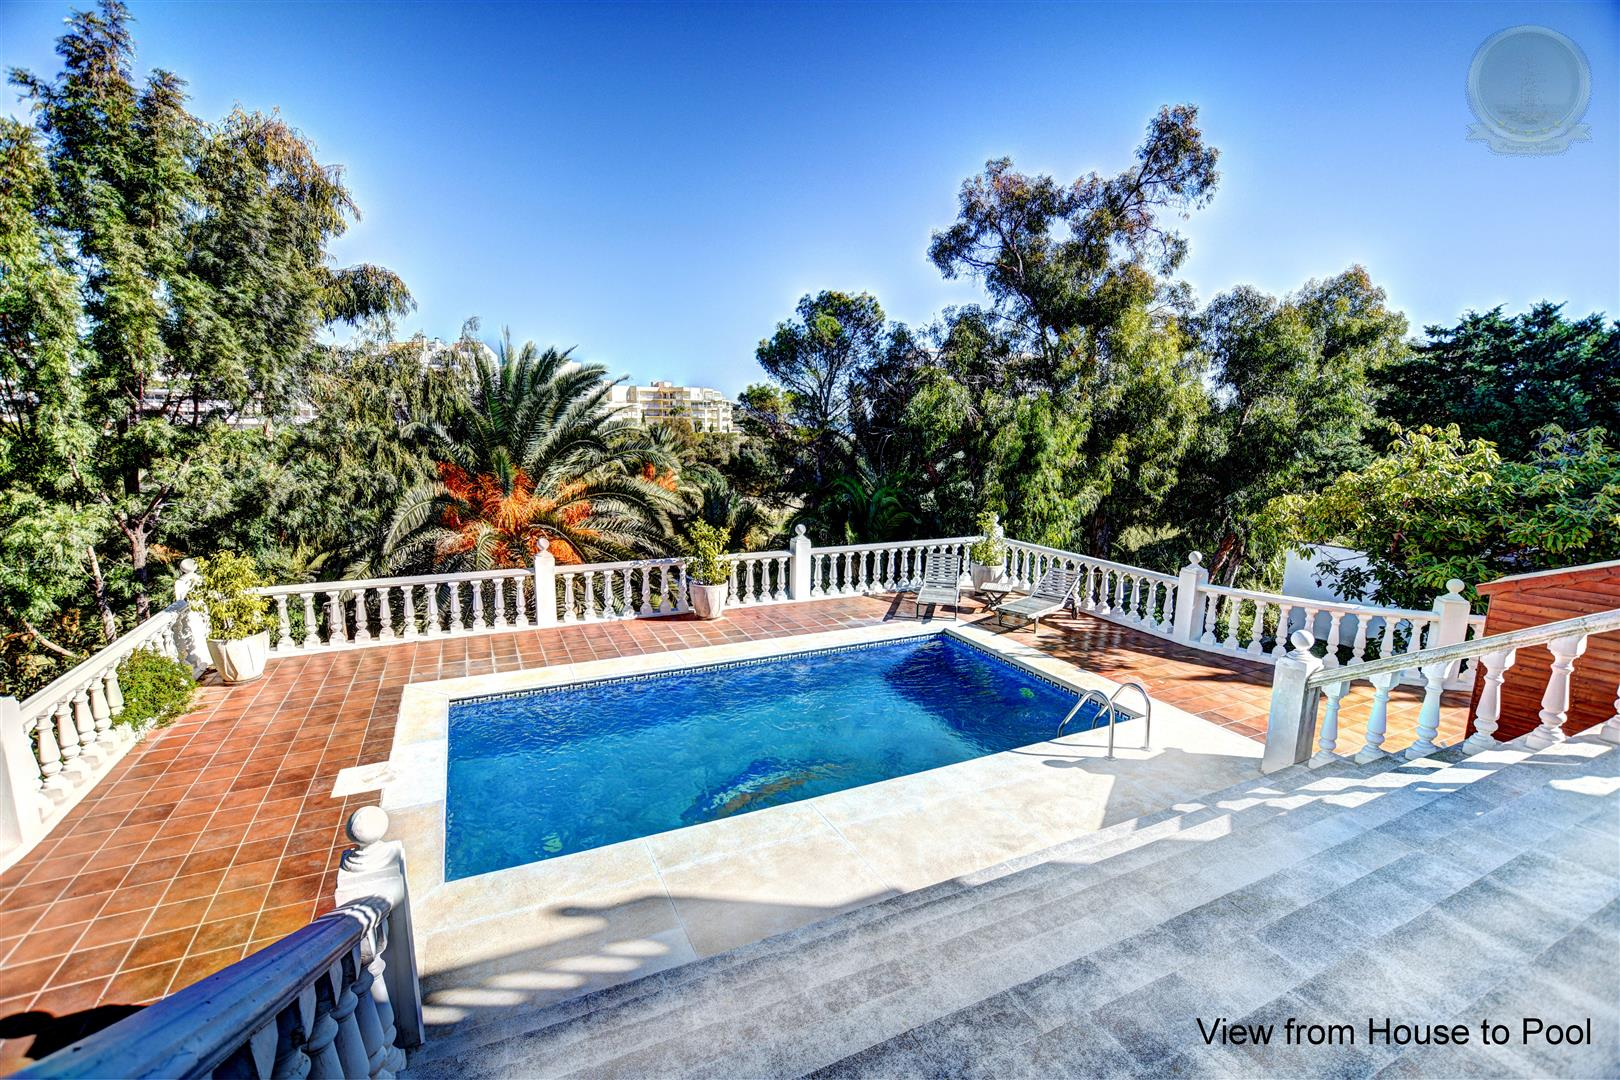 Villa for Sale in Benalmadena Costa 2